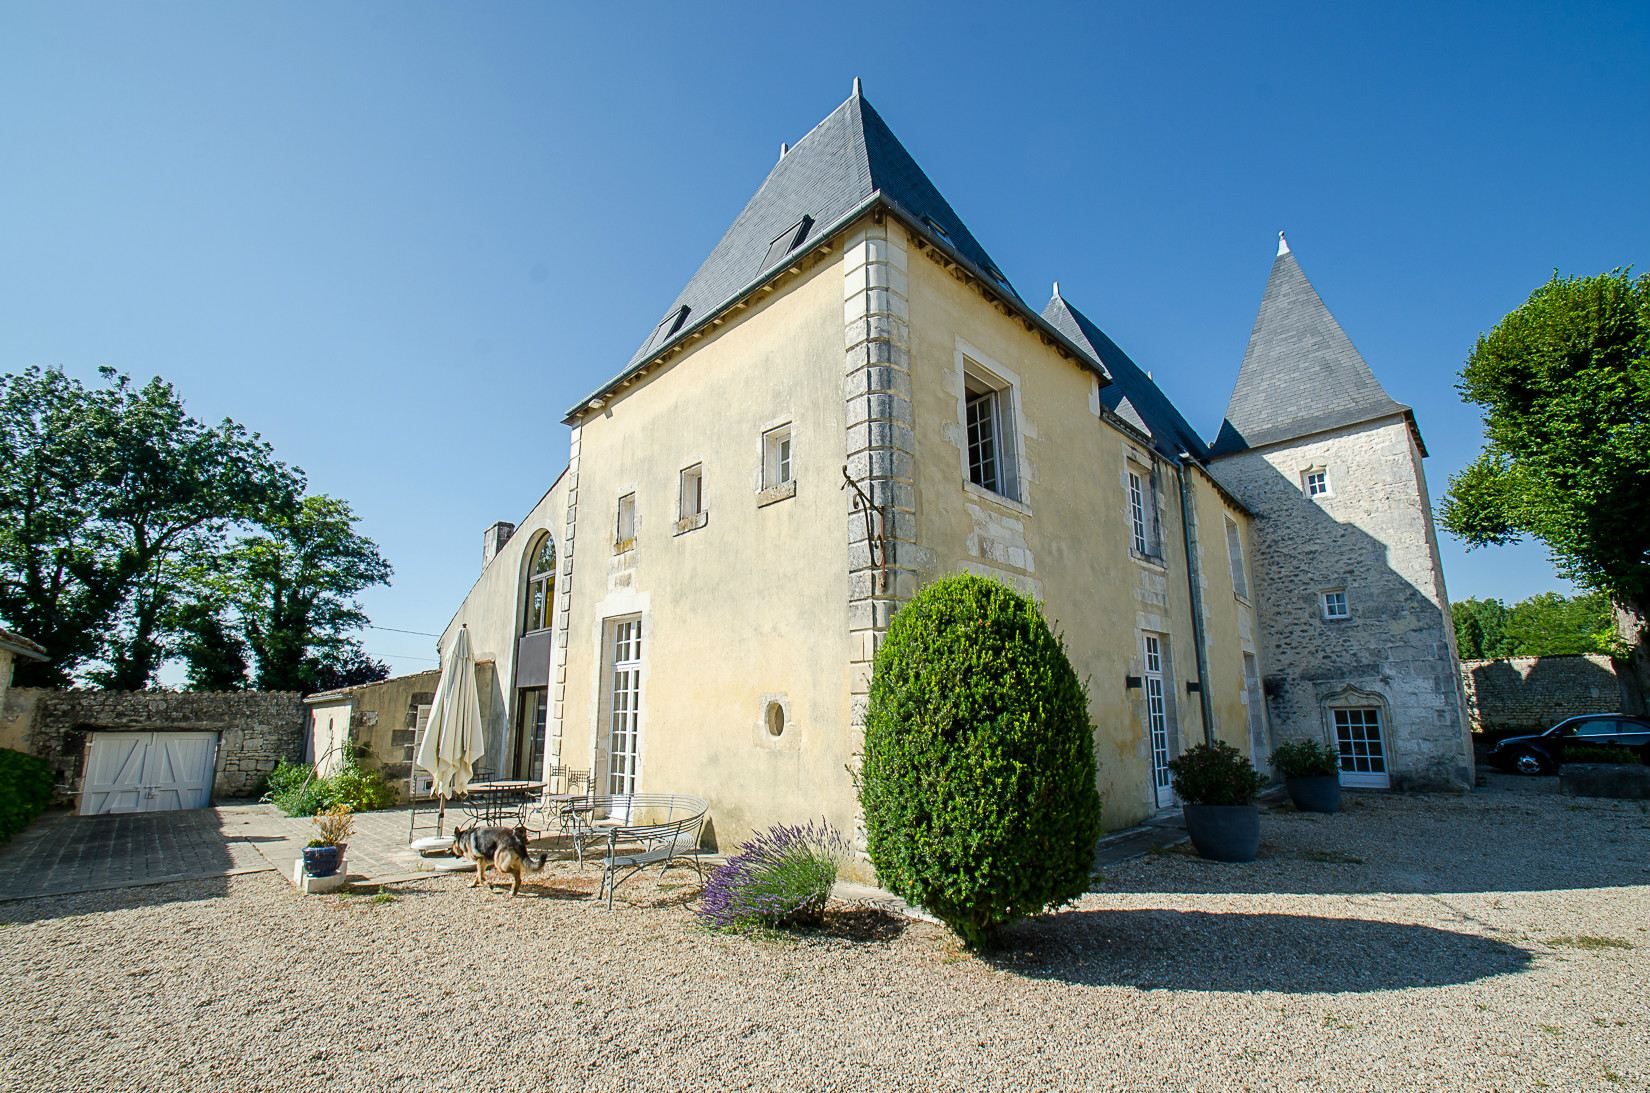 sales property at 19th century Castle with 9 hole golf course